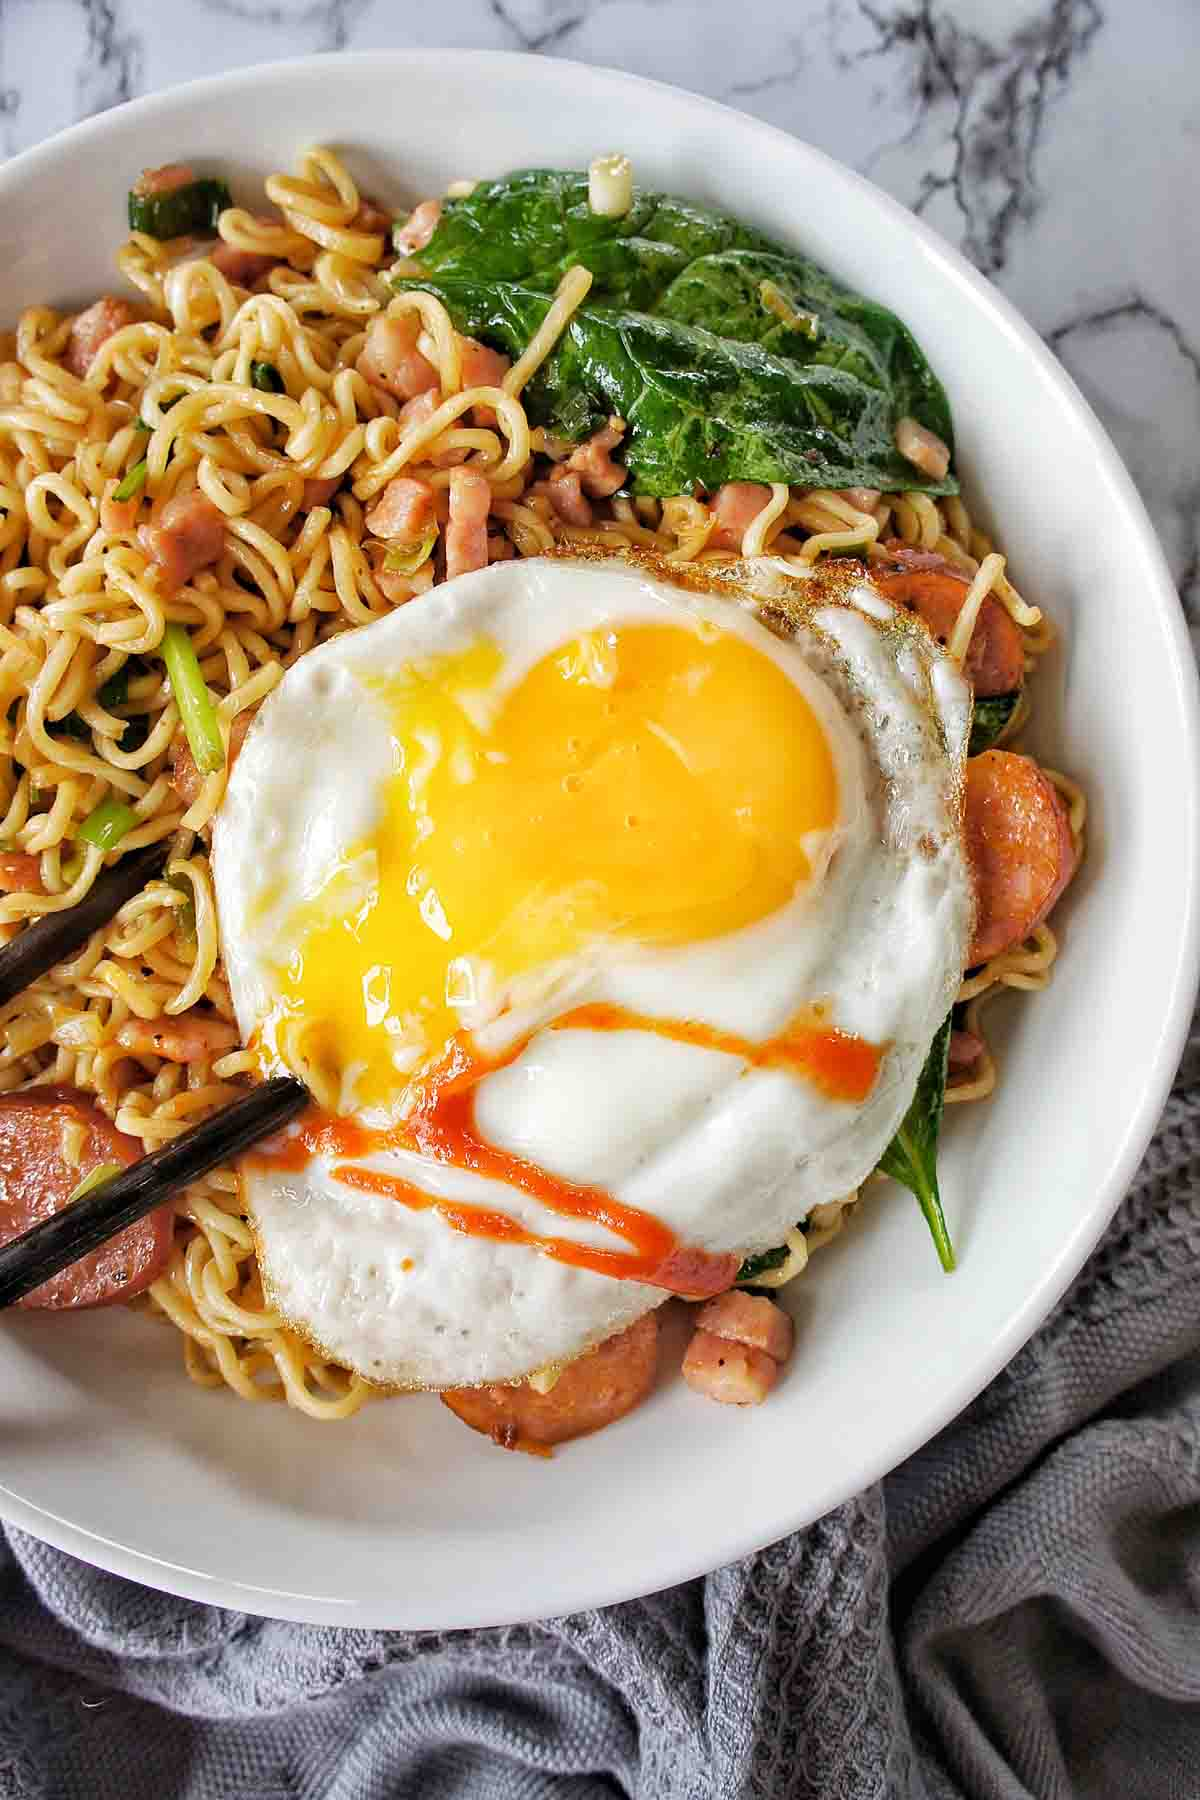 Frieg egg on top of bowl of noodles with chili sauce